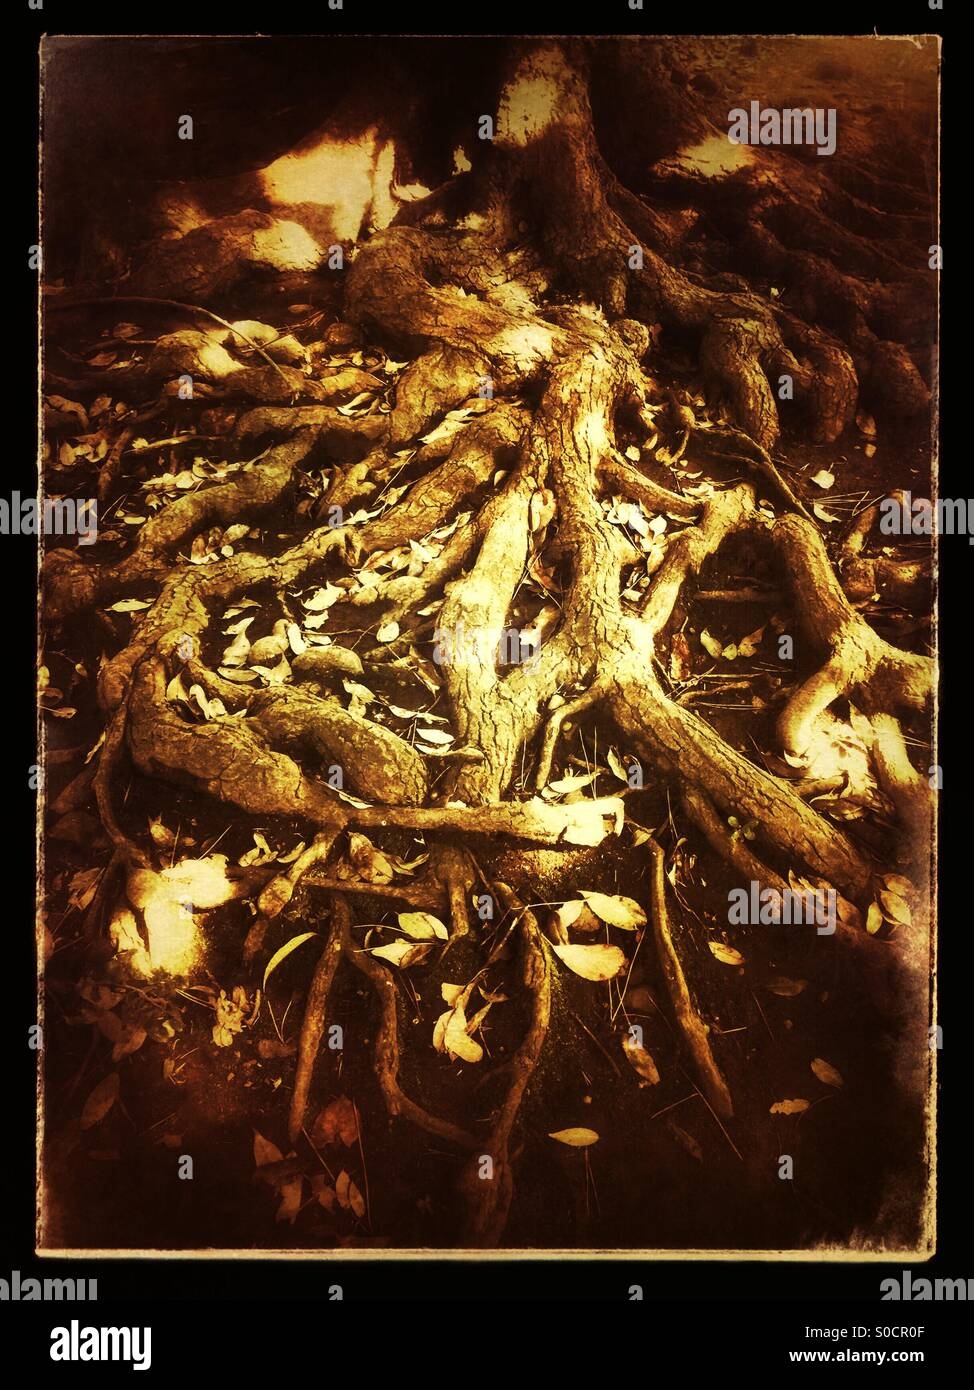 Very old tree with convoluted roots, with sunlight streaming through the leaves and onto the root surface. Golden - Stock Image